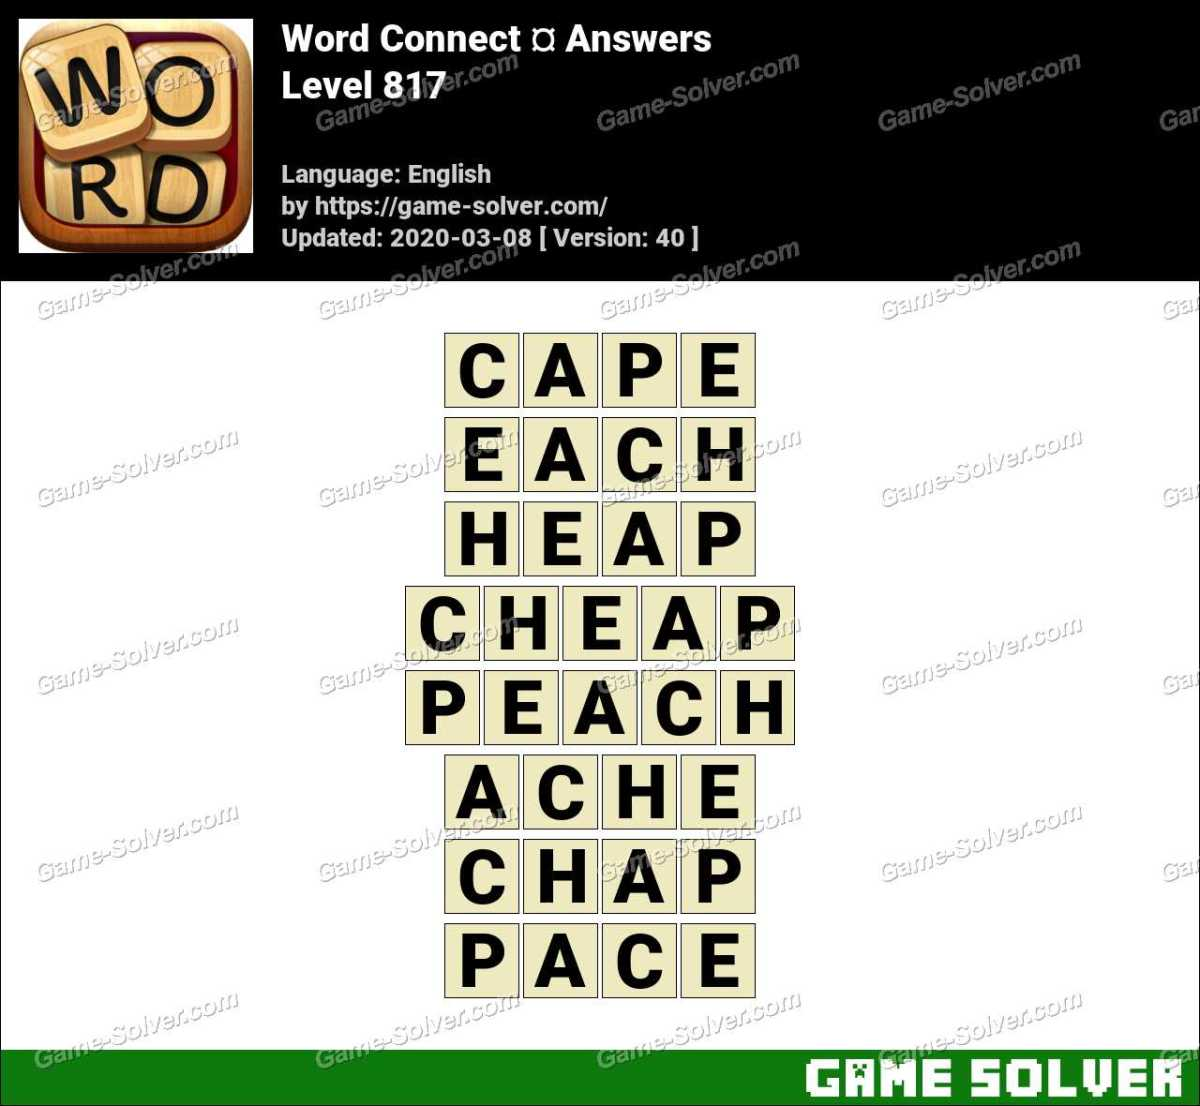 Word Connect Level 817 Answers